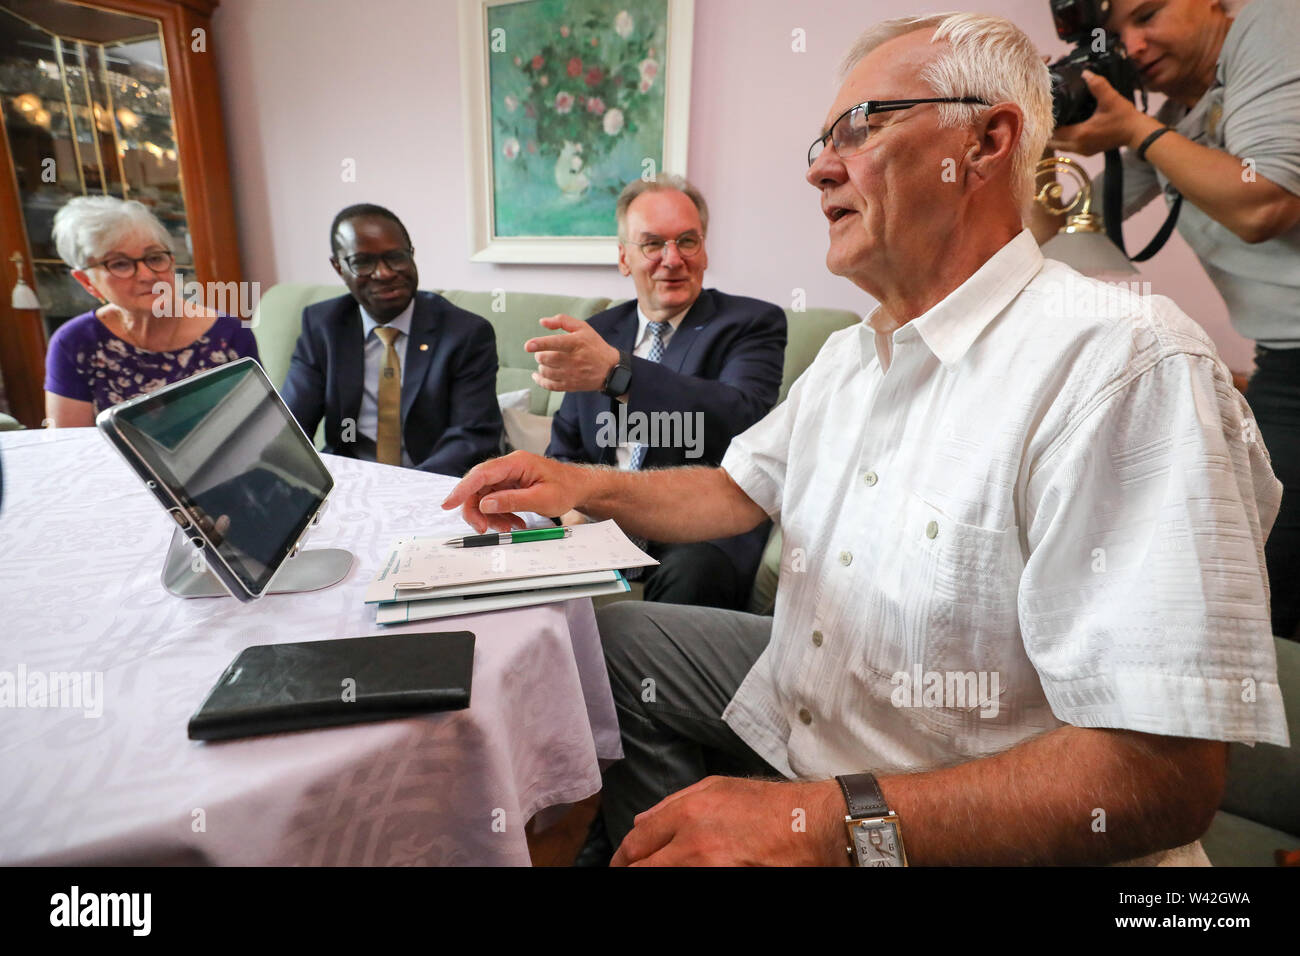 19 July 2019, Saxony-Anhalt, Halle (Saale): Pensioner Siglinde Neumann (l-r), Karamba Diaby (SPD), Member of the Bundestag for Halle (Saale), Reiner Haseloff (CDU), Prime Minister of Saxony-Anhalt, and pensioner Norbert Neumann talk about the advantages of telemedicine at a media event. From the point of view of a housing cooperative in Halle, telemedicine could be a great help, especially for older people. In a project in 20 apartments, 94 percent of the test persons rated the digital doctor's interview as very good or good. For the 'Haendel II' project, 20 apartments were equipped with the a - Stock Image